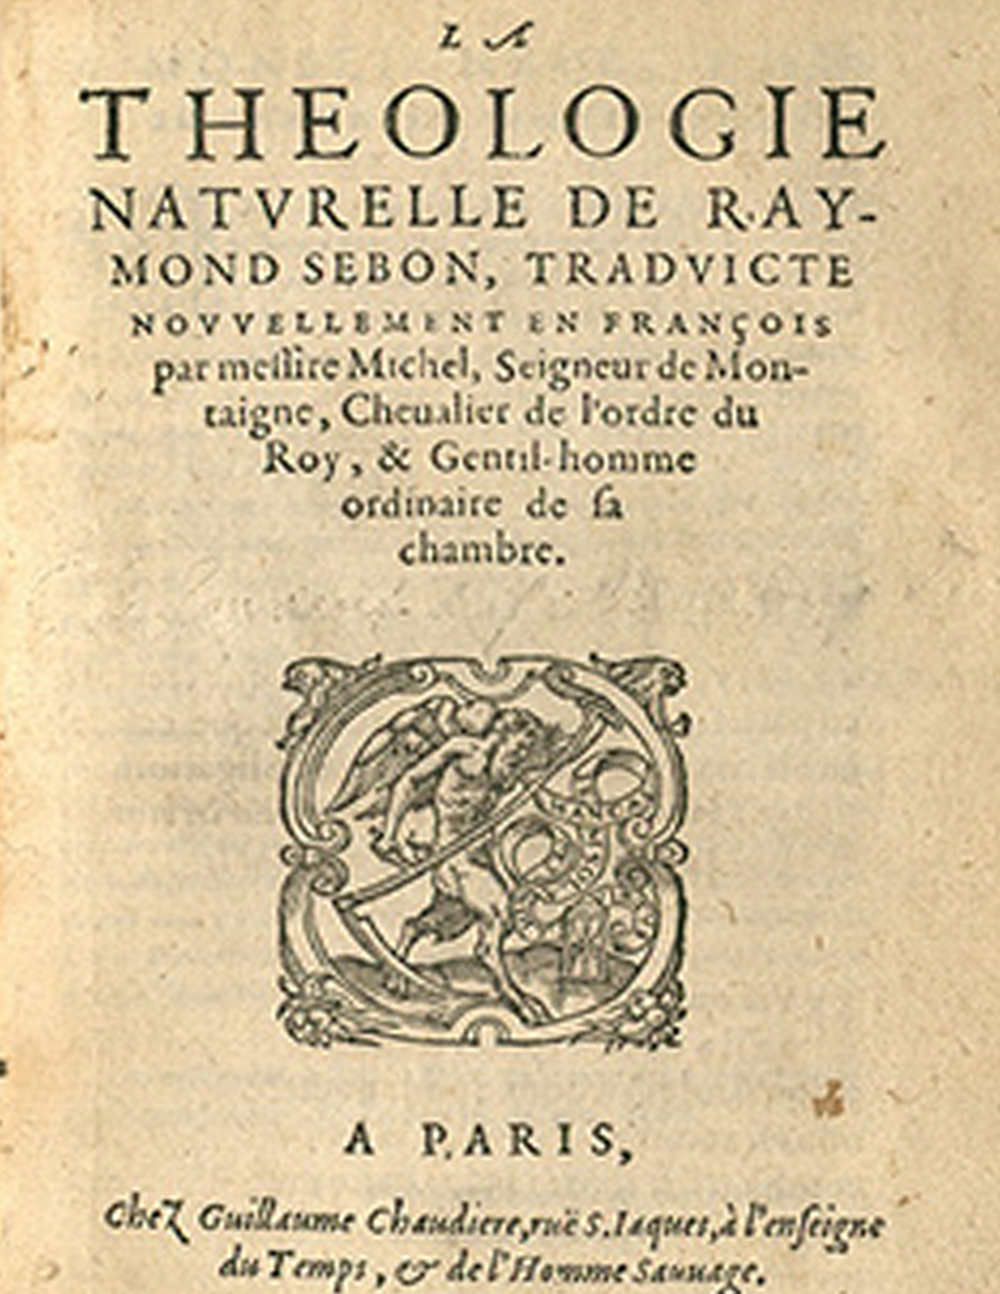 From Ramon Sabunde,  La Theologie Naturelle translated by Michel de Montaigne (Paris, 1581).  Courtesy  Les Bibliothèques Virtuelles Humanistes   Appears on:  Writing